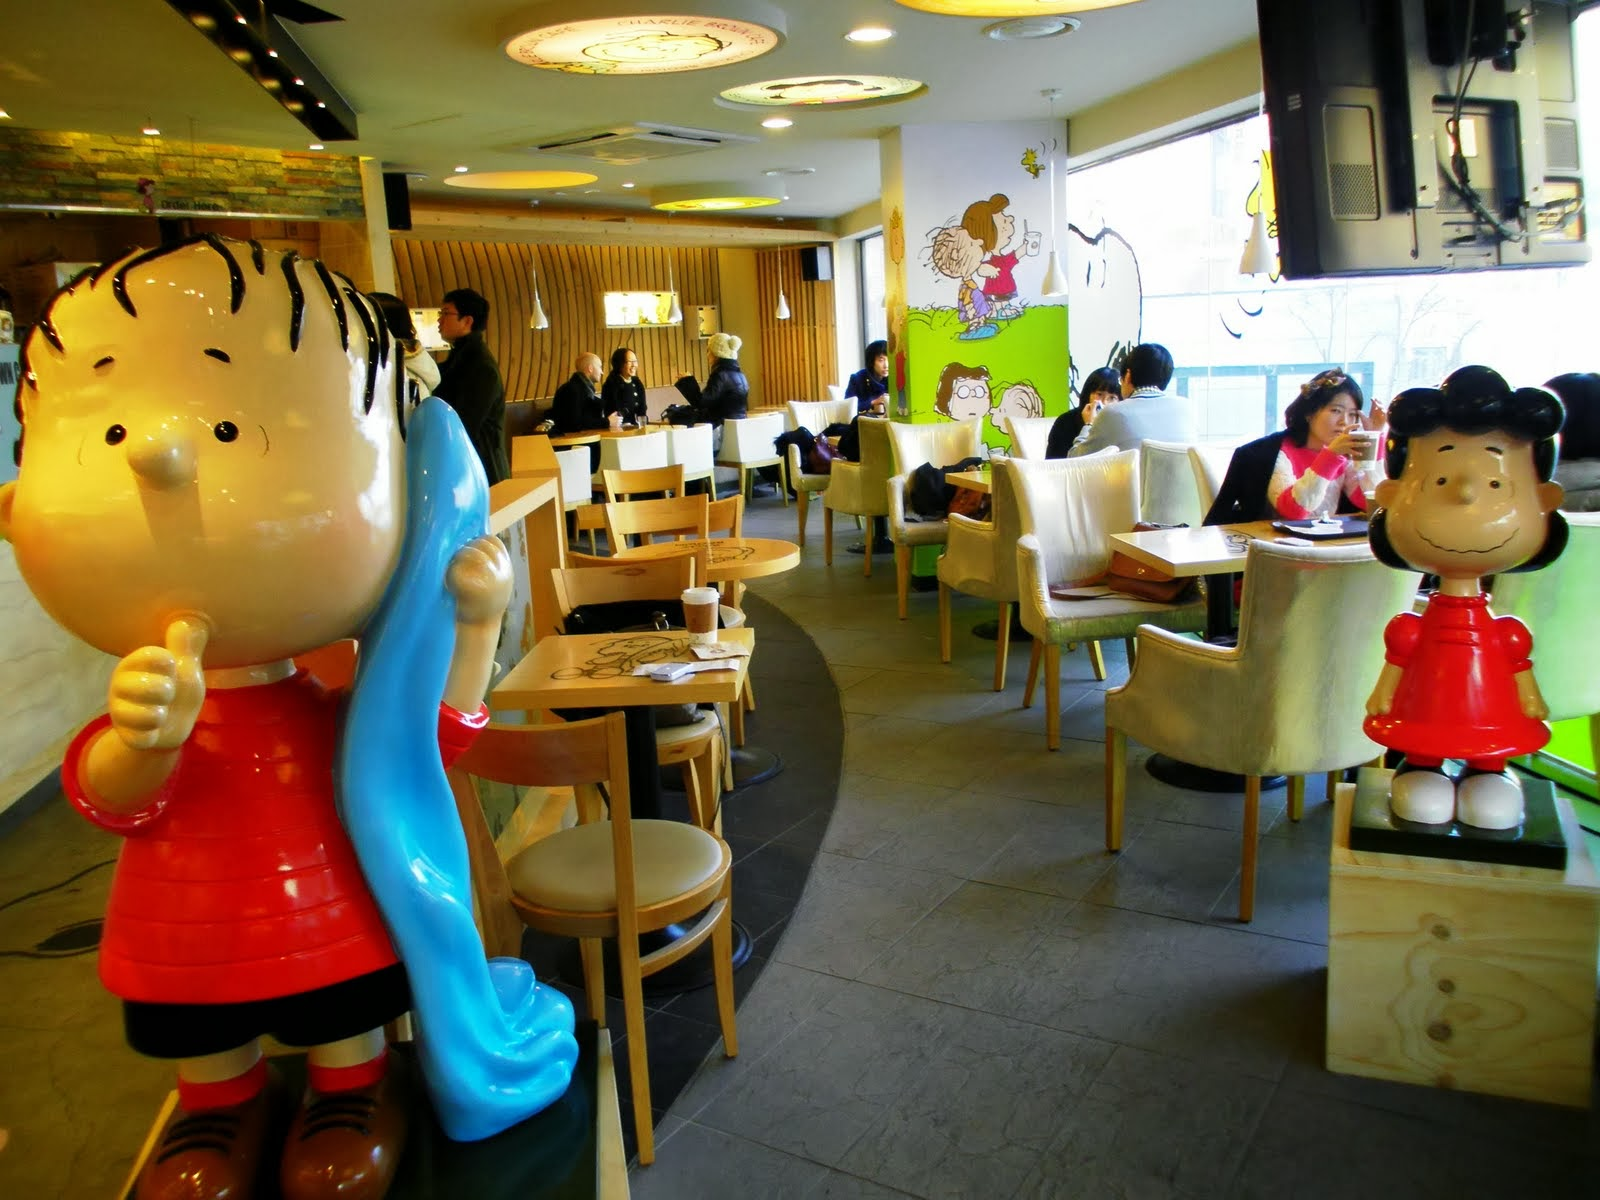 The interior of the Charlie Brown Cafe. Image from blogspot.com.